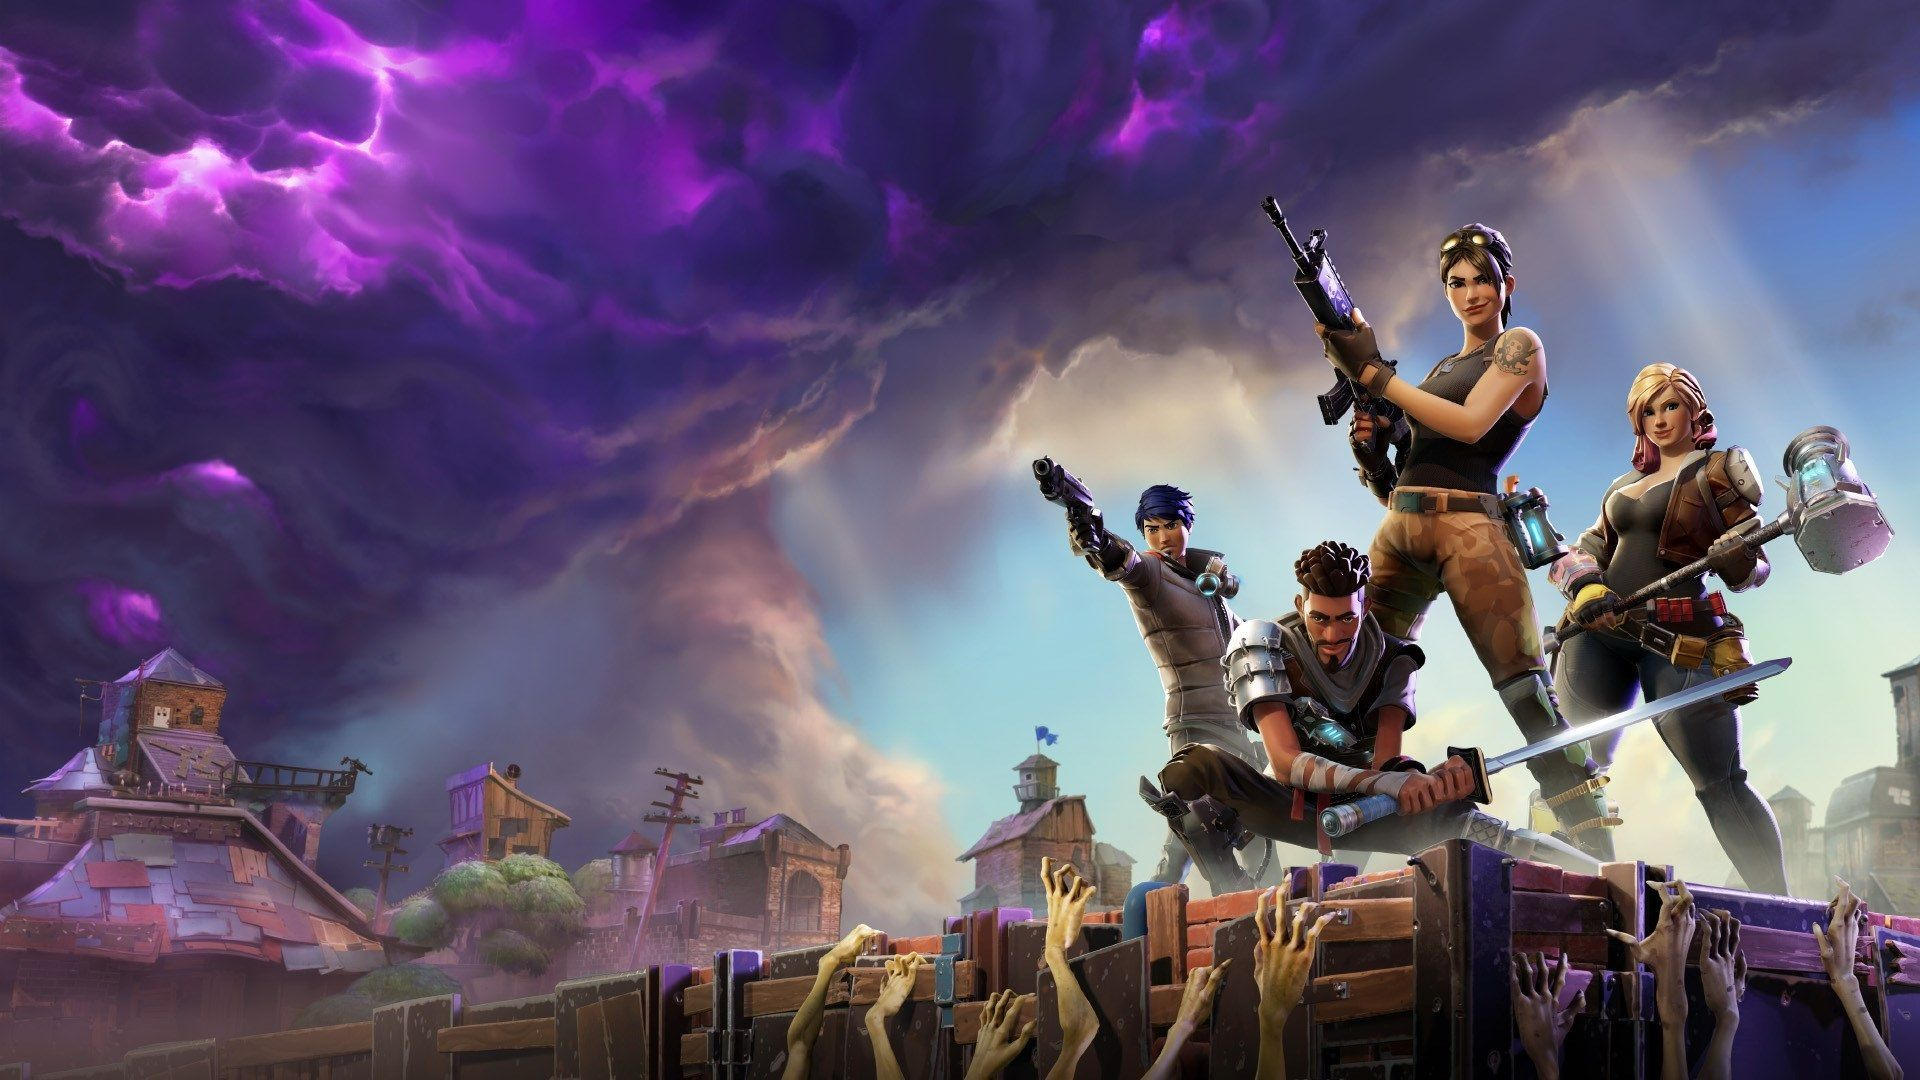 19 Fortnite Desktop Full Screen Wallpapers On Wallpapersafari